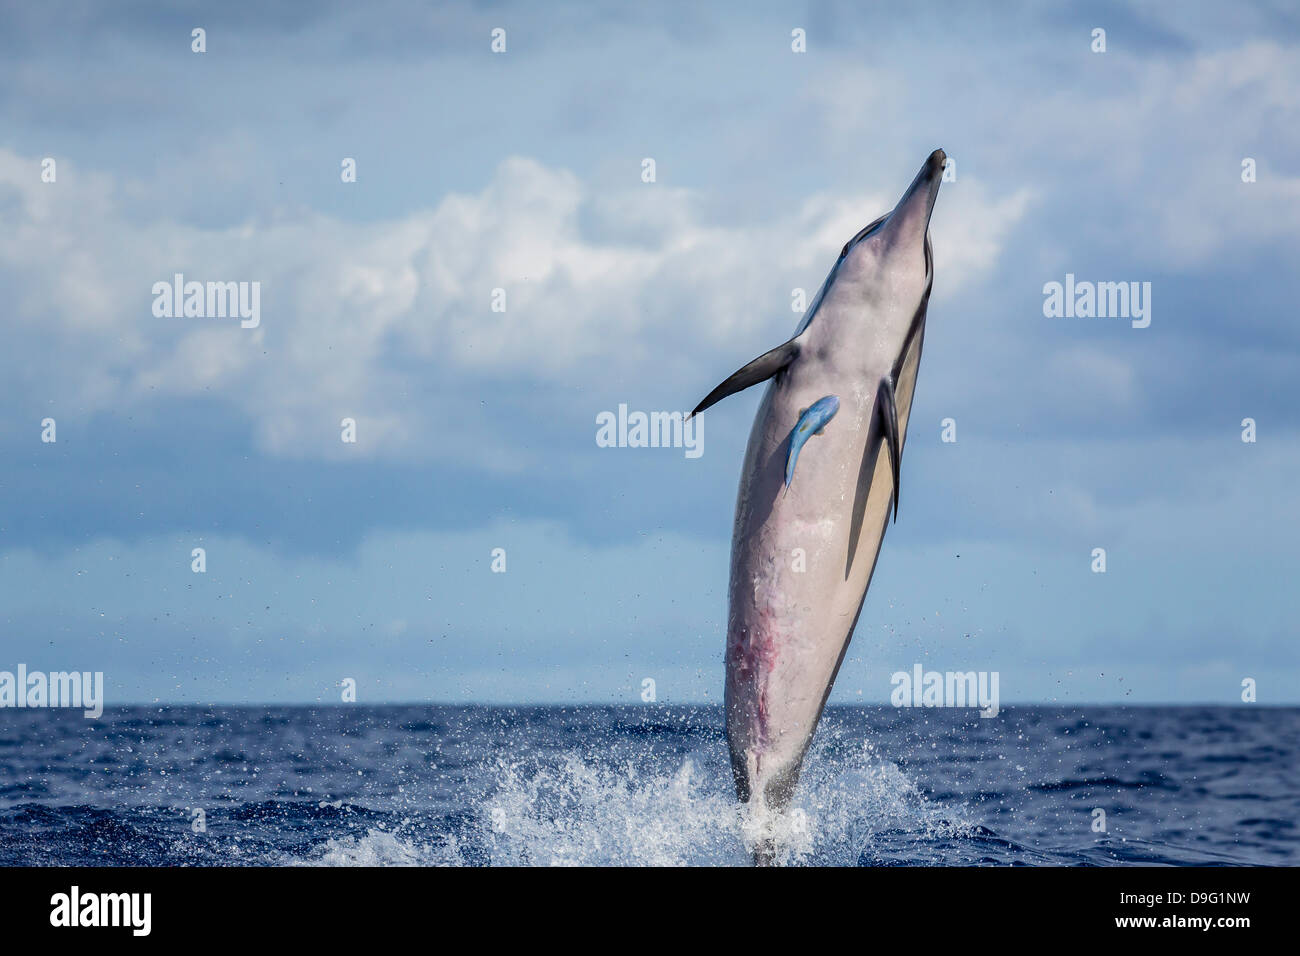 Hawaiian spinner dolphin (Stenella longirostris), AuAu Channel, Maui, Hawaii, United States of America - Stock Image